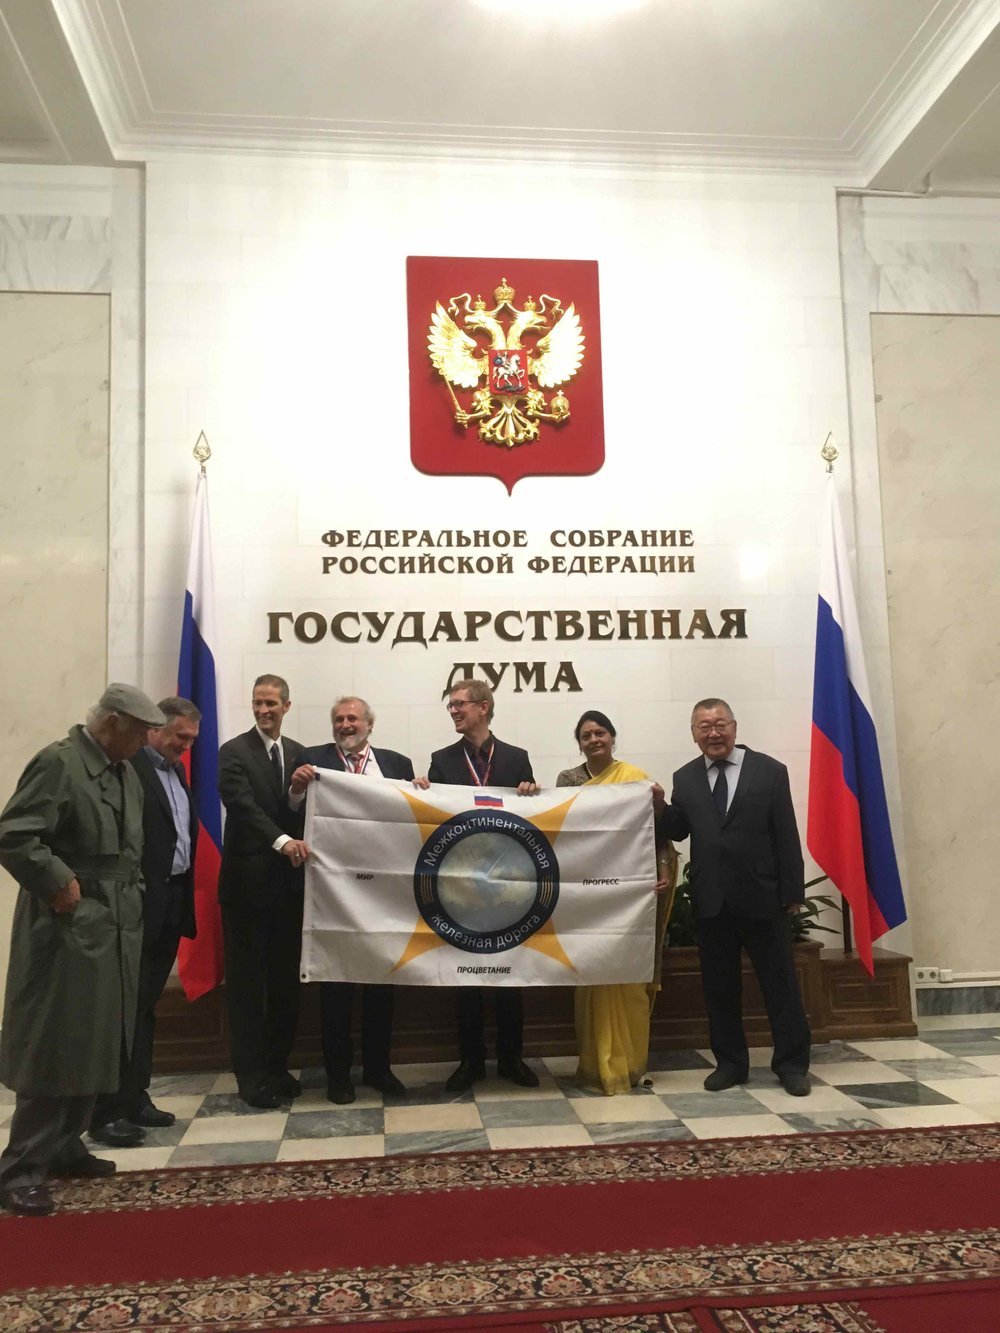 The InterContinental Railway team unveil the Russian version of the ICR flag at the Russian State Duma.